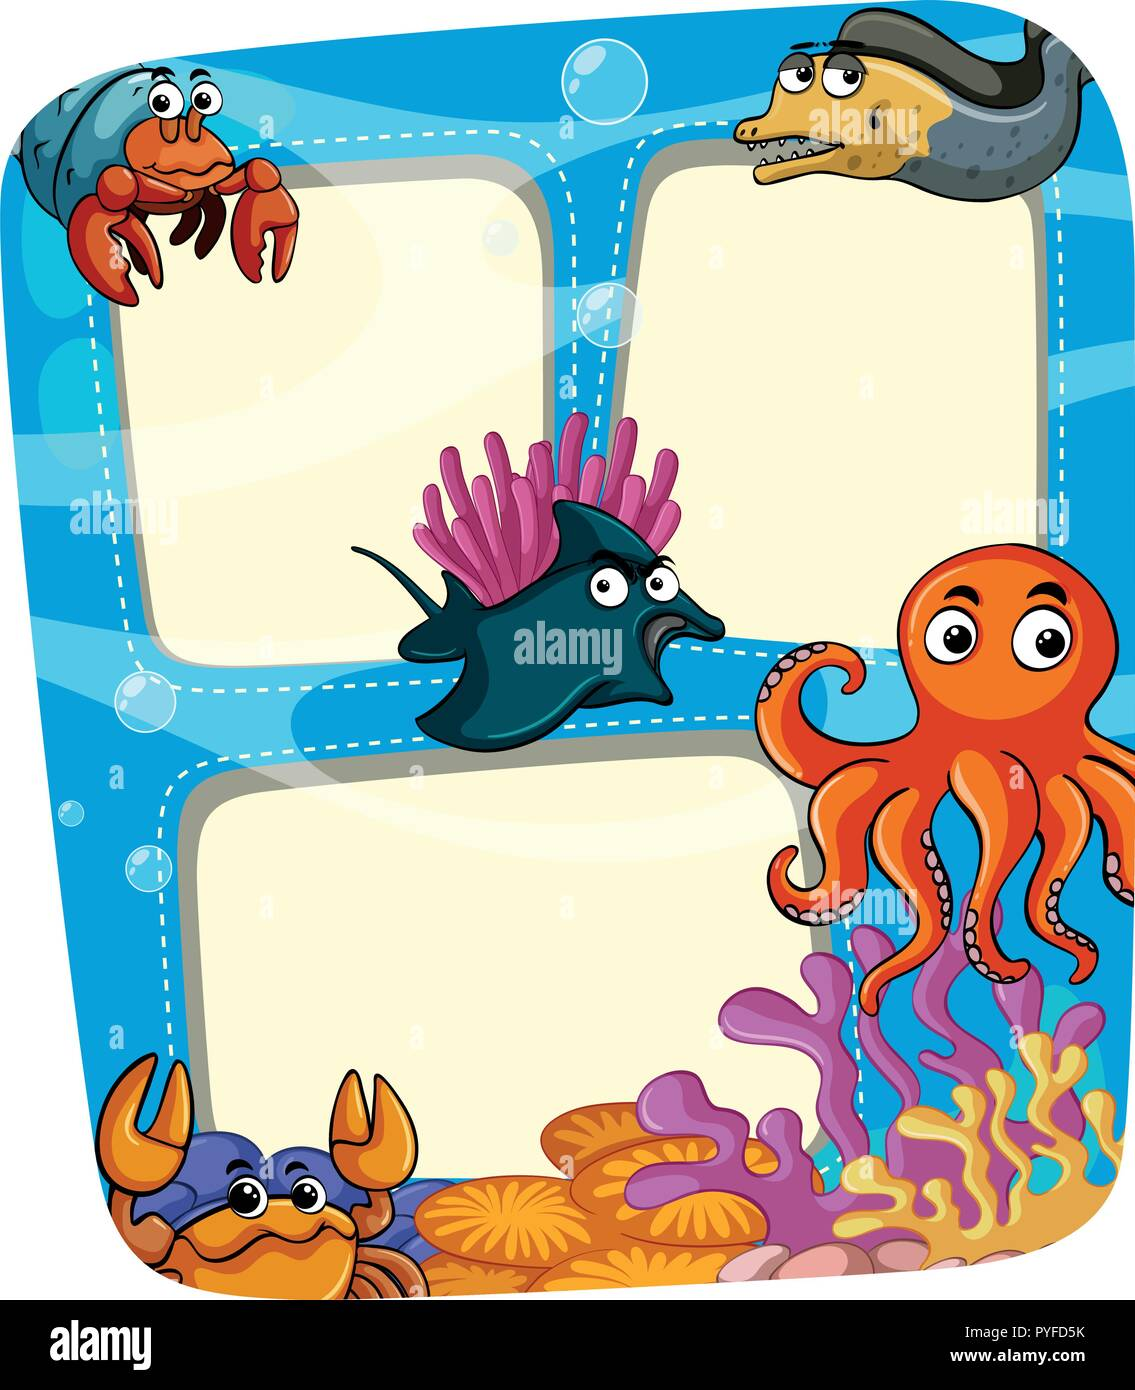 border template with animals under the sea illustration stock vector